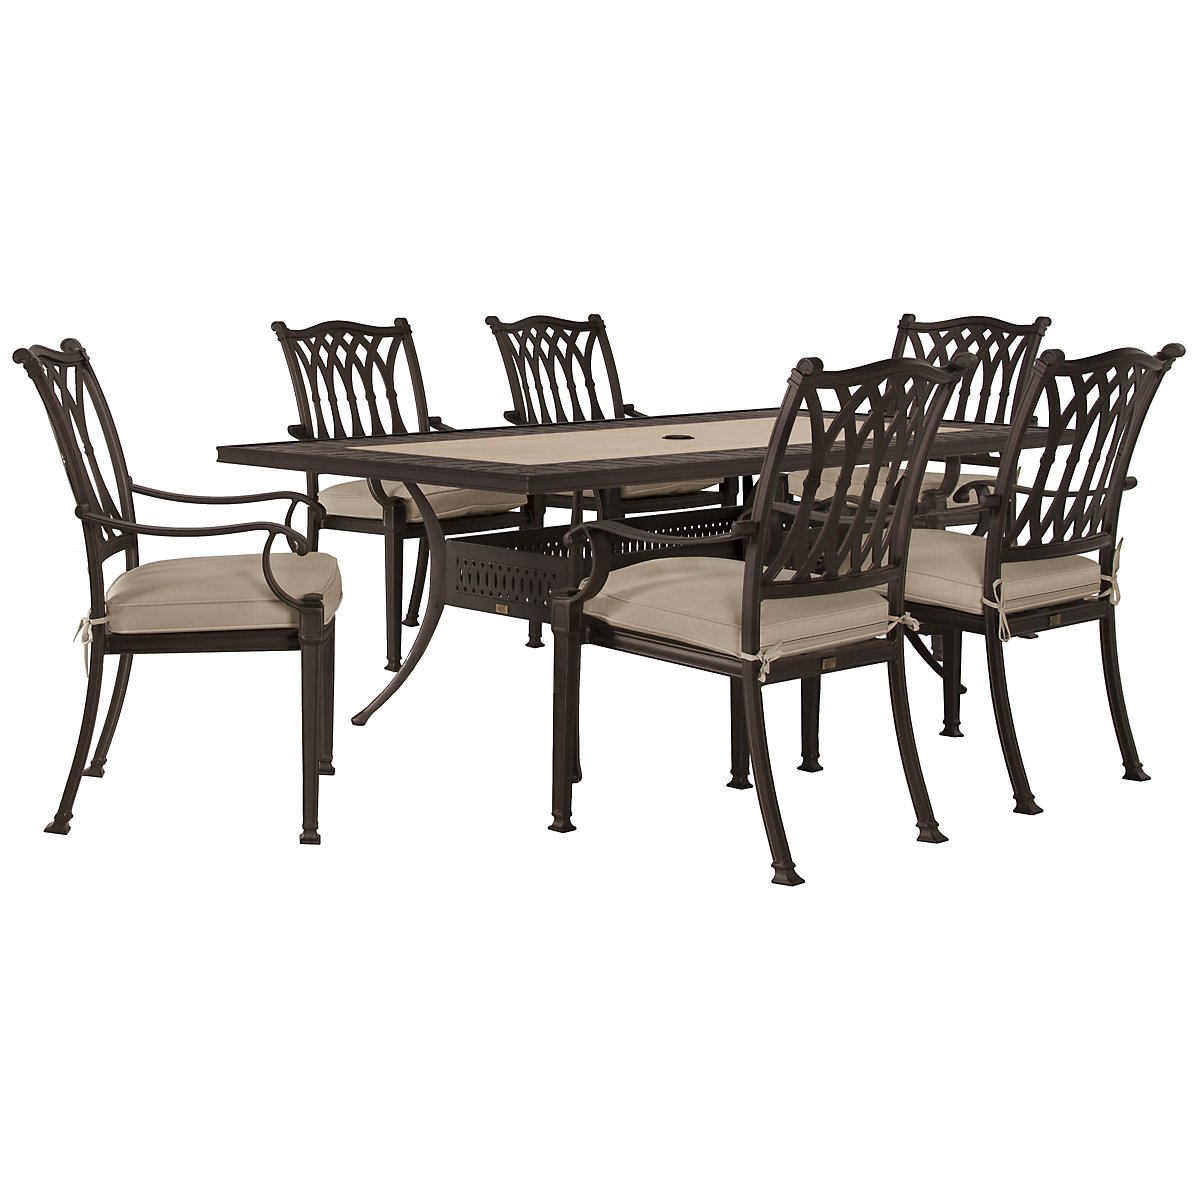 "Primera Dark Tone 84"" Rectangular Table & 4 Cushioned Chairs"